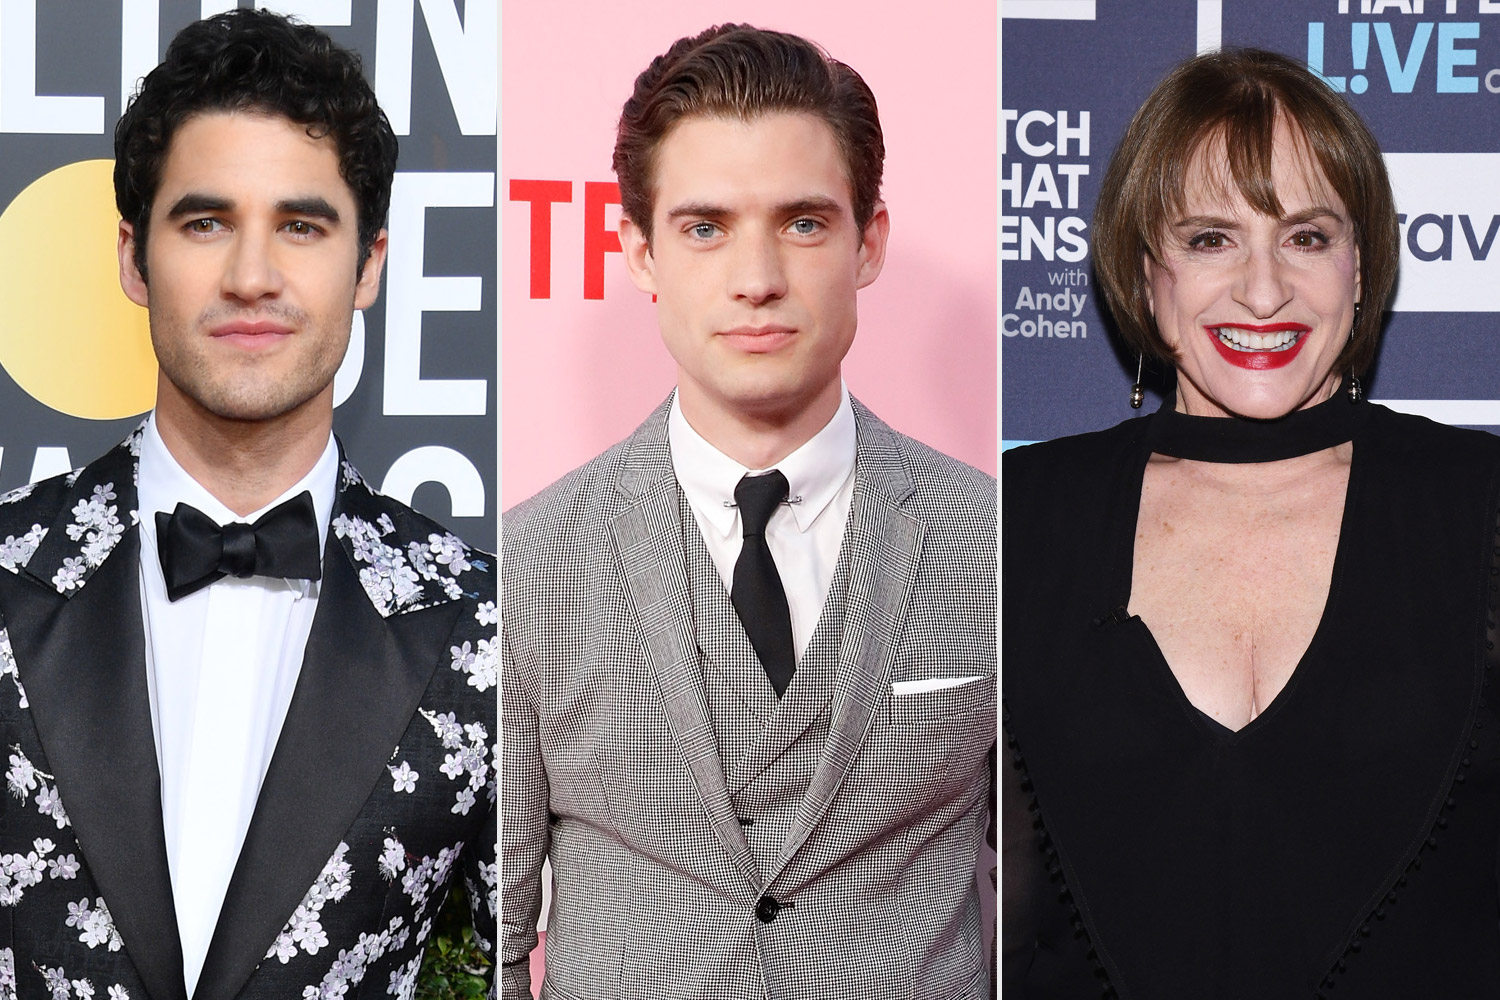 Darren-Criss,-David-Corenswet,-and-Patti-LuPone